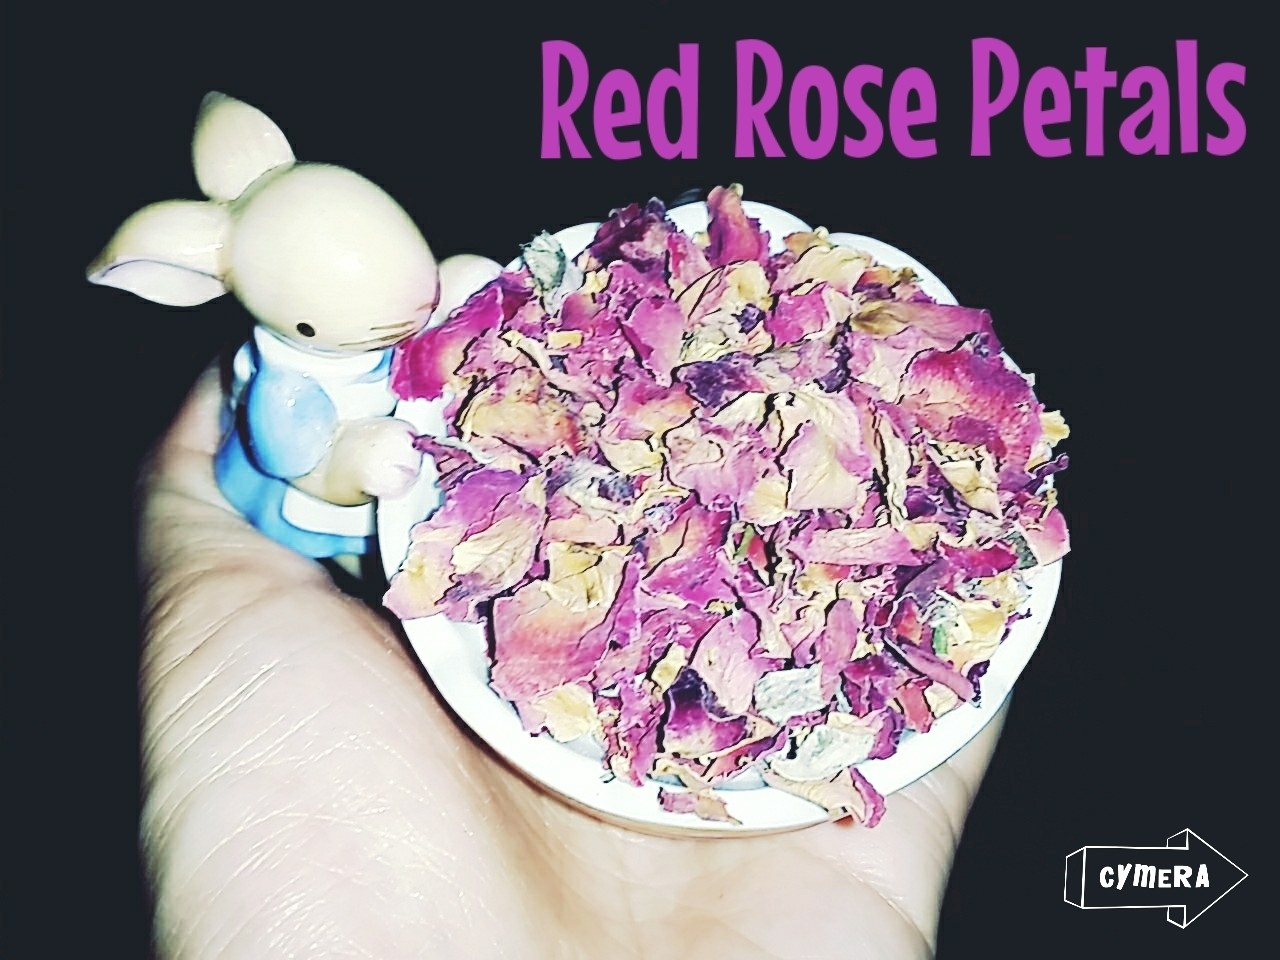 Dried Red Rose Petals 40g